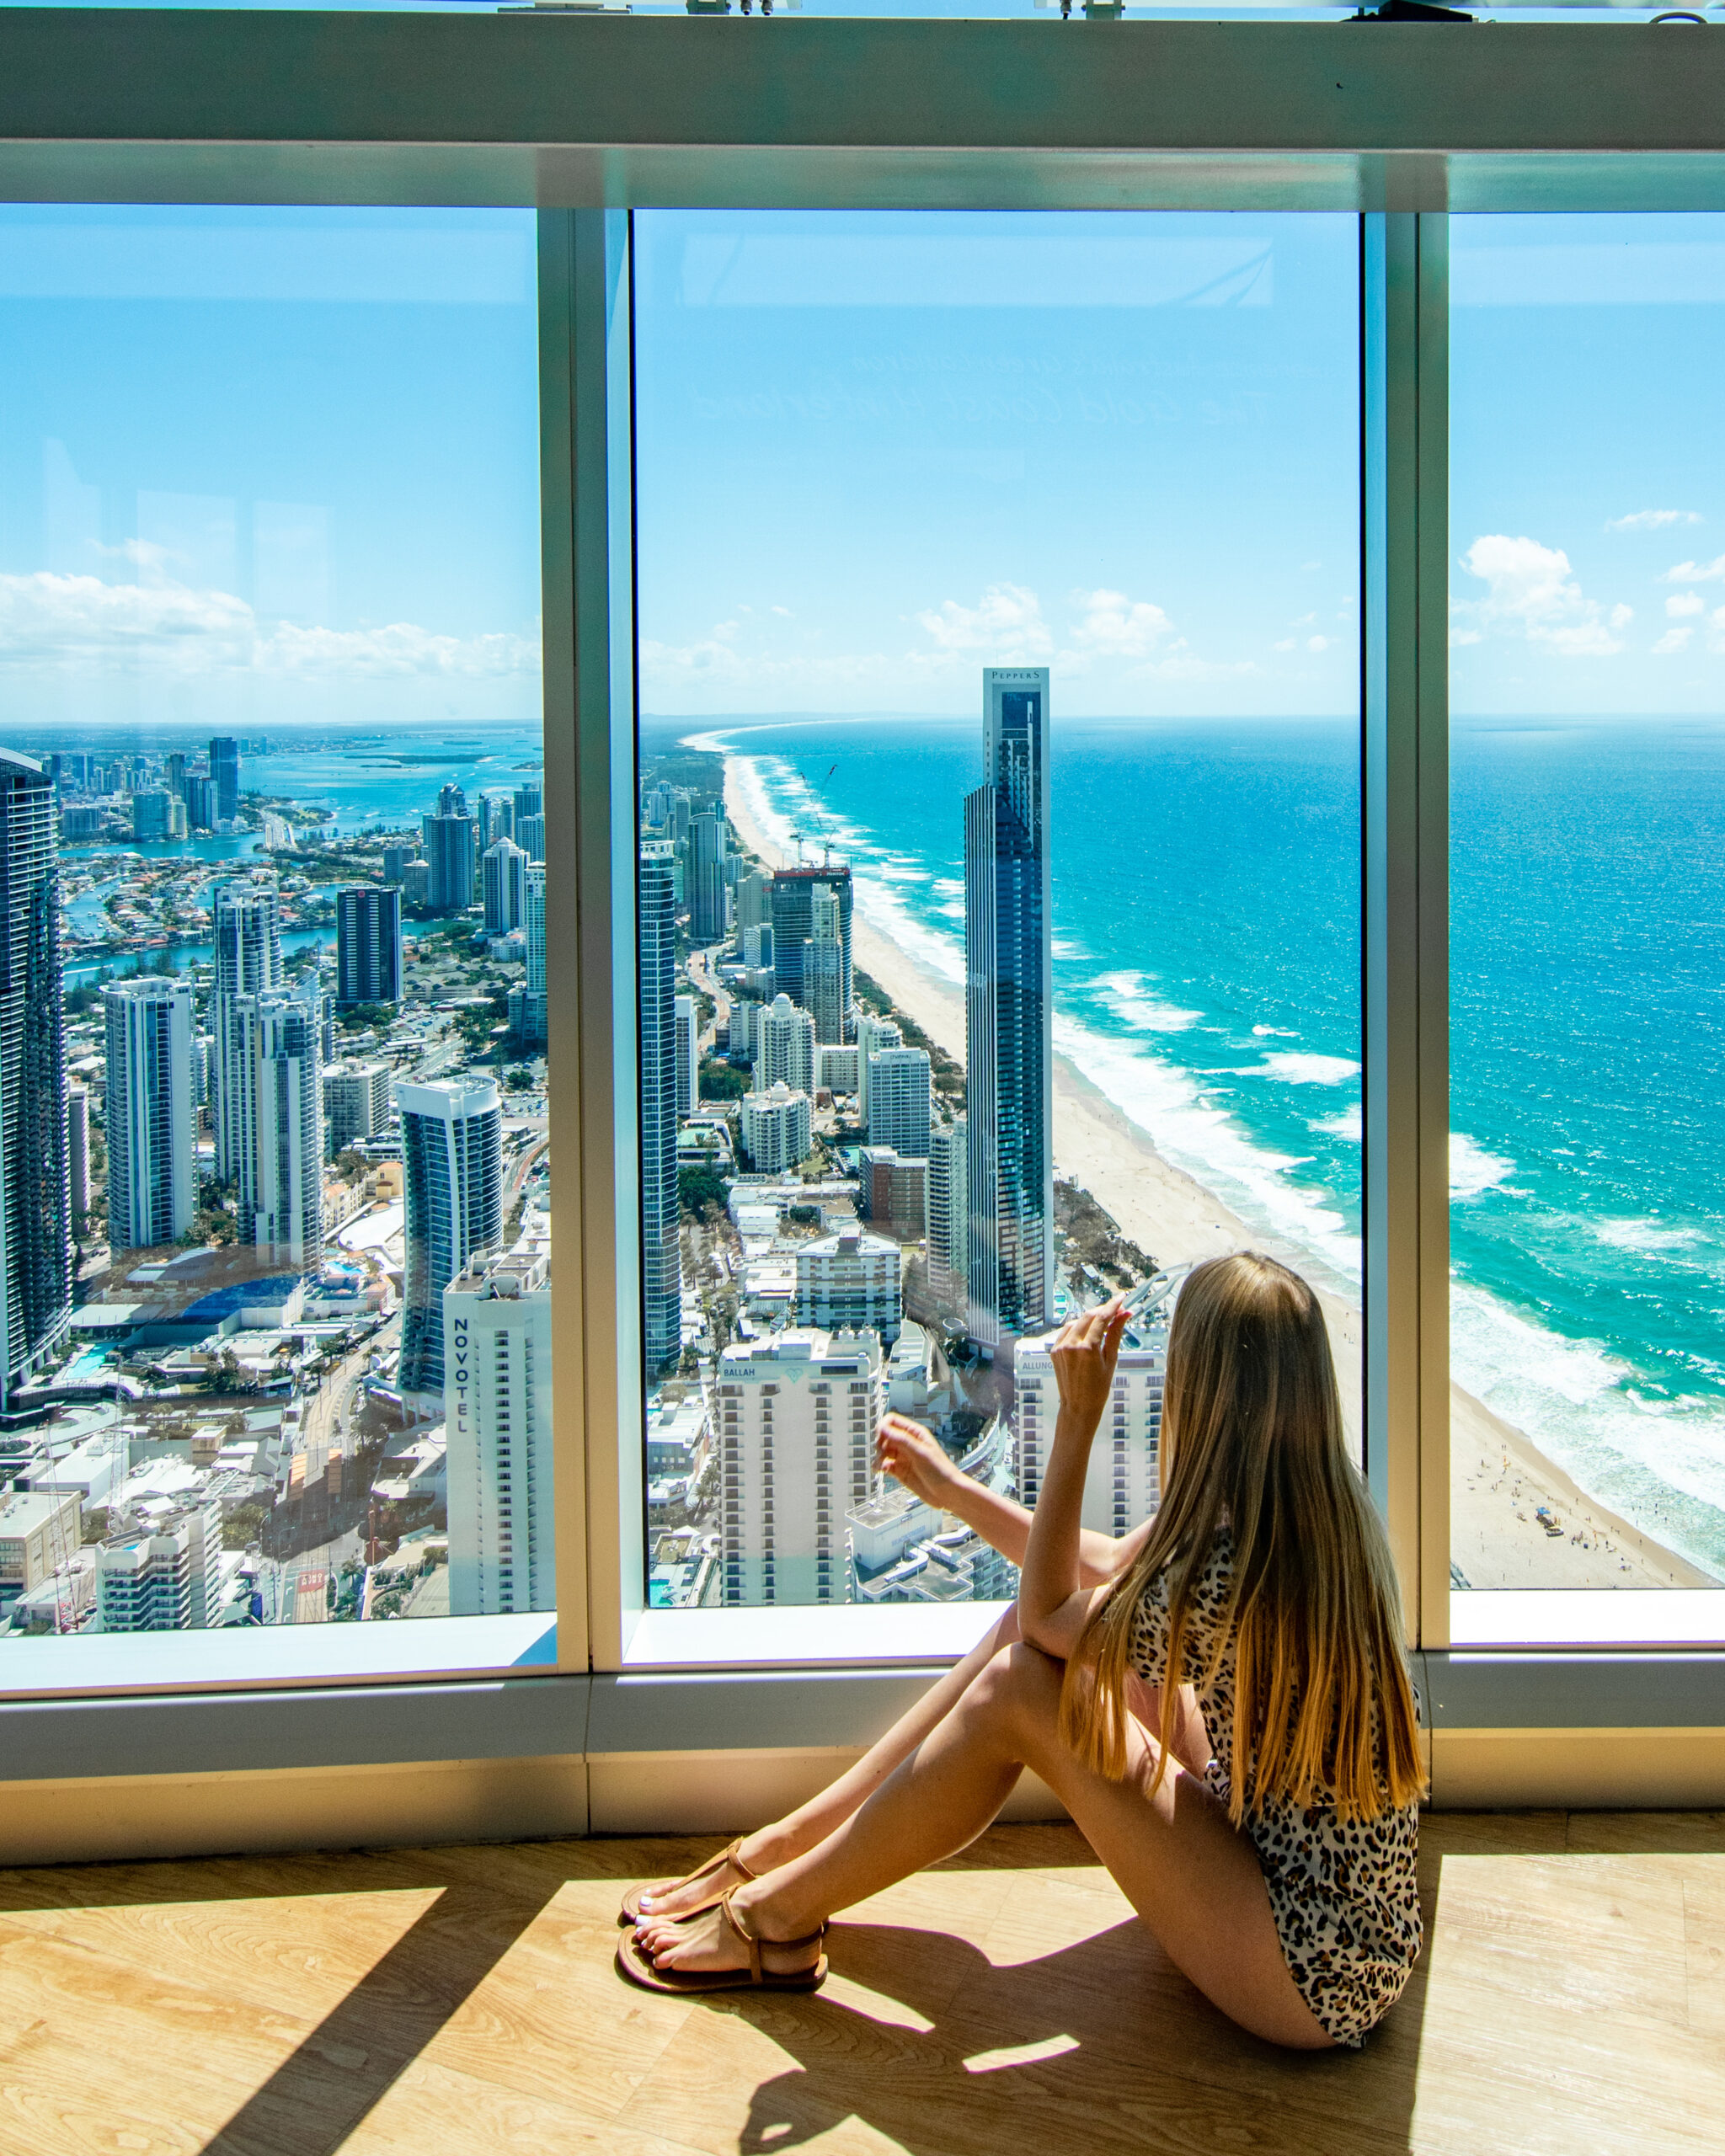 Skypoint Observation Deck Q1 Surfers Paradise 10